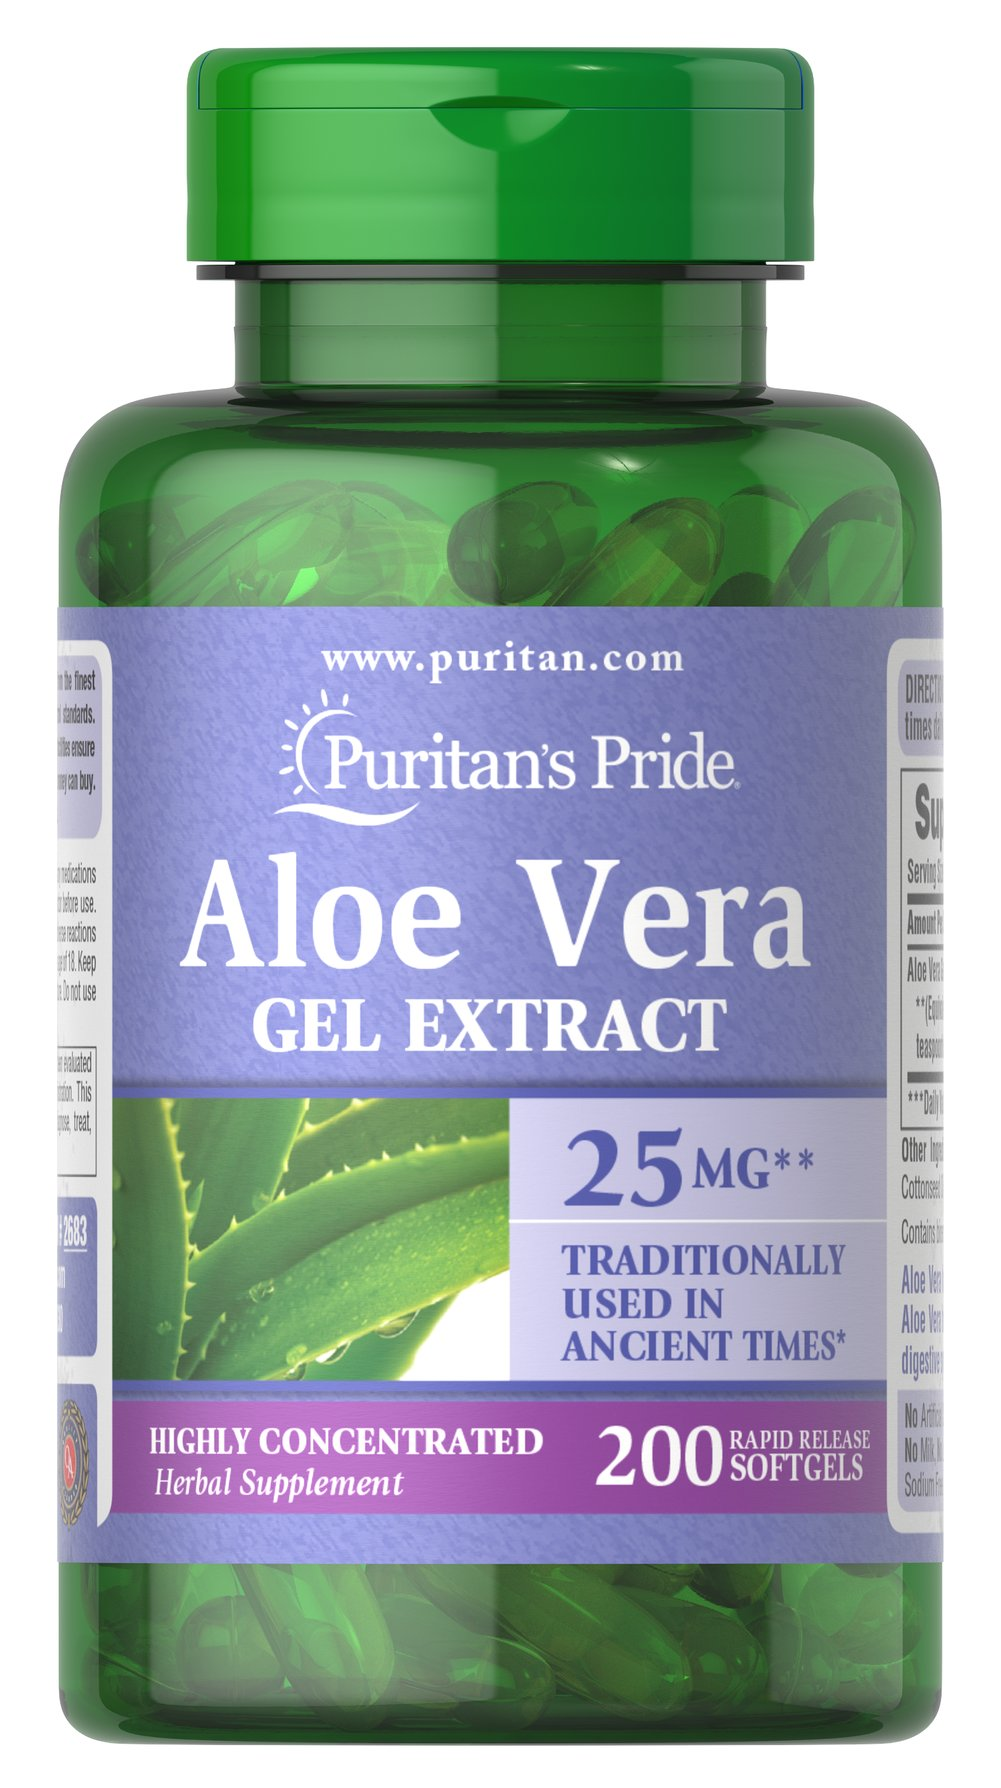 Aloe Vera Extract 25 mg <p>Serves as an aid for healthy digestion**</p><p>Plays a role in the well-being of the body**</p><p>Convenience of capsules, softgels and liquids is unsurpassed</p><p>Has been used and trusted for centuries. **</p><p>Aloe Vera contains a vast array of vitamins, minerals, amino acids, polysaccharides and phenolic compounds, and has been shown to support a healthy digestive system.**</p> 200 Softgels 25 mg $16.49